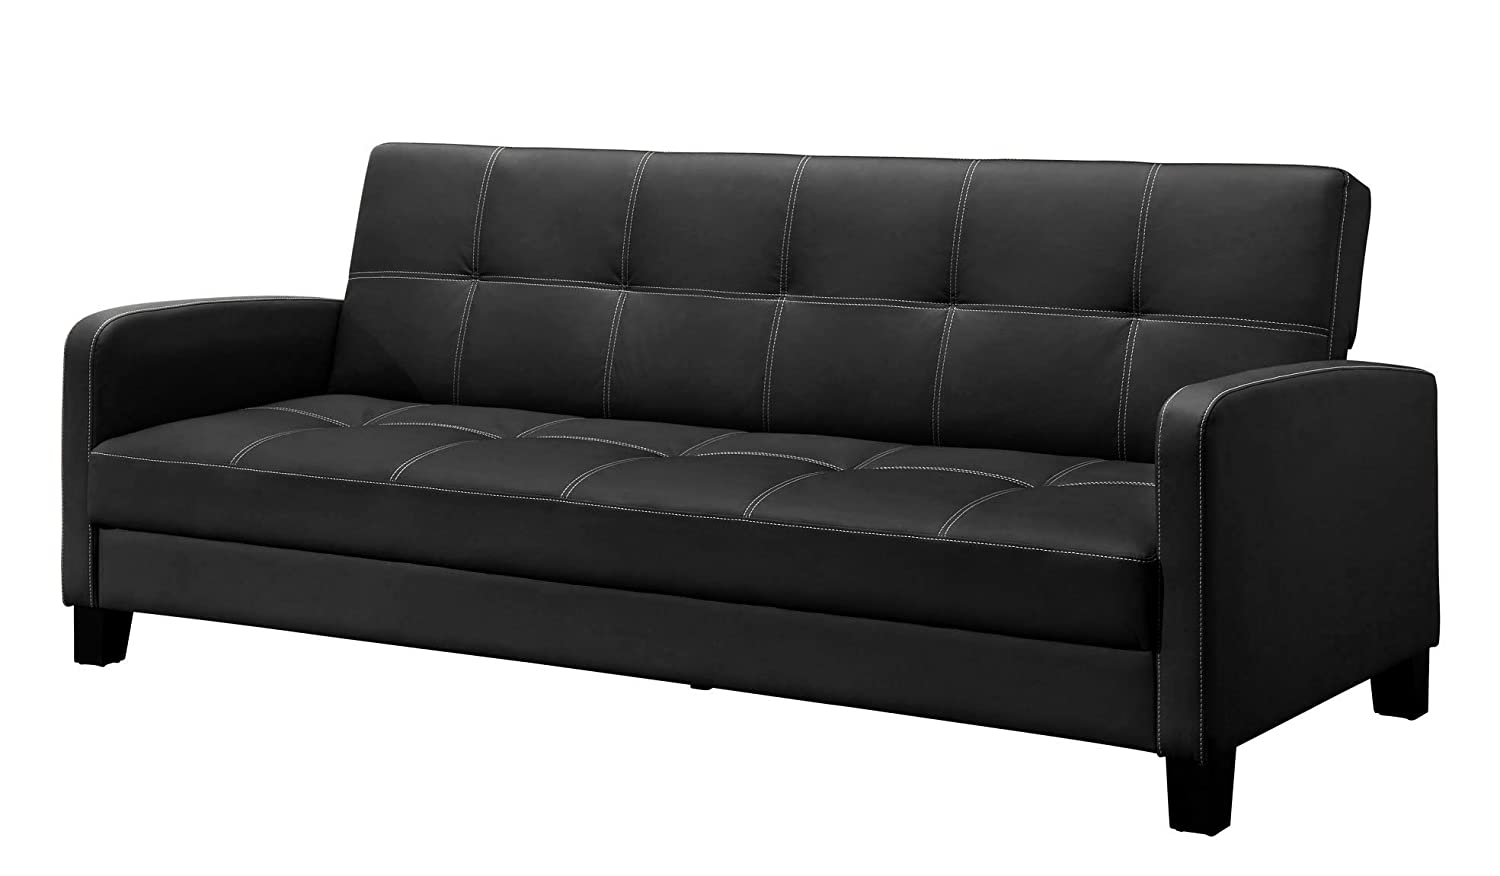 Amazon.com: DHP Delaney Sofa Sleeper In Rich Faux Leather, Multifunctional,  Black: Kitchen U0026 Dining